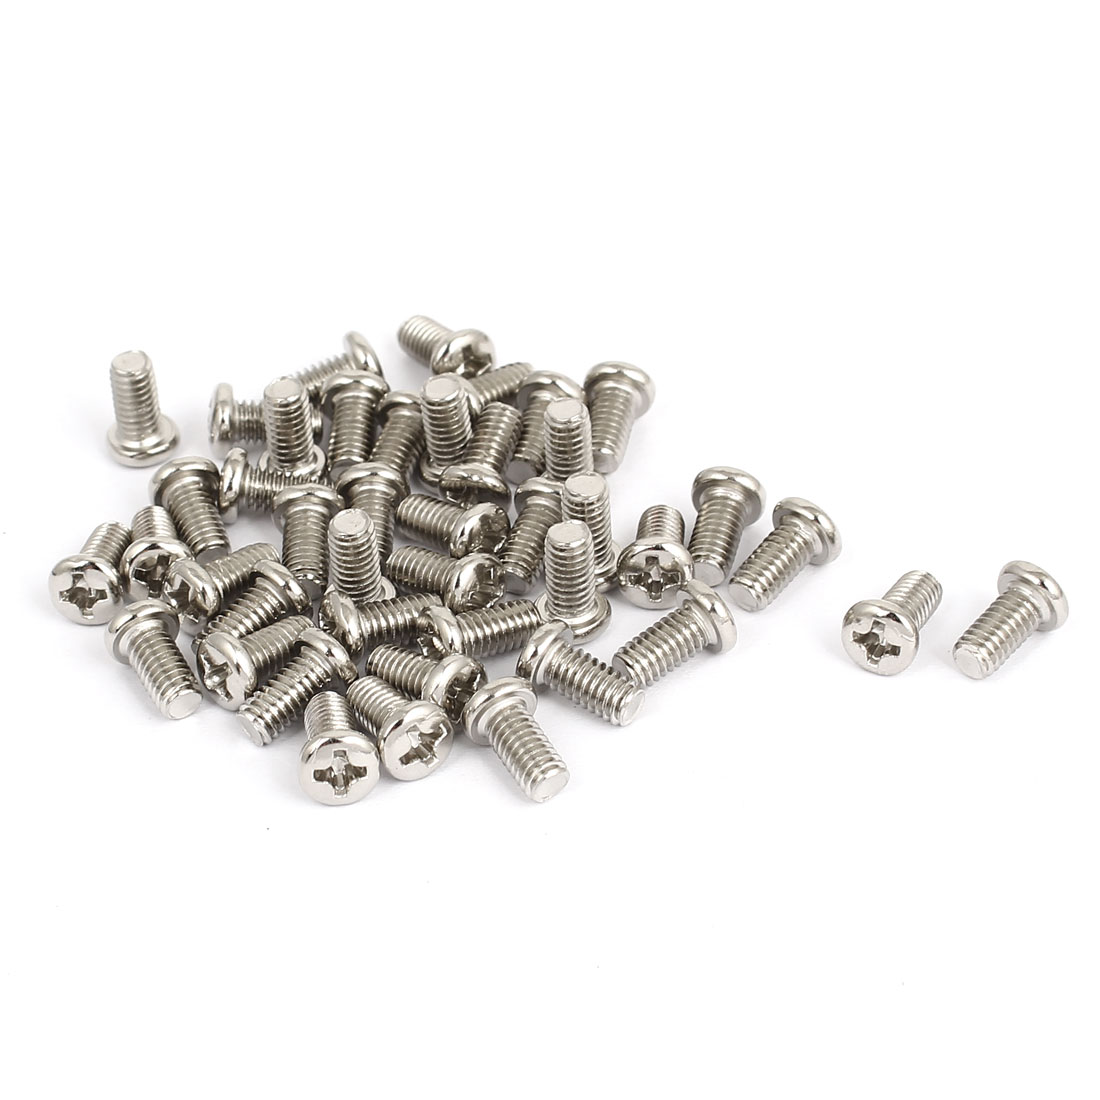 M4x8mm Thread 0.7mm Pitch Phillips Cross Head Bolt Machine Screw 40pcs